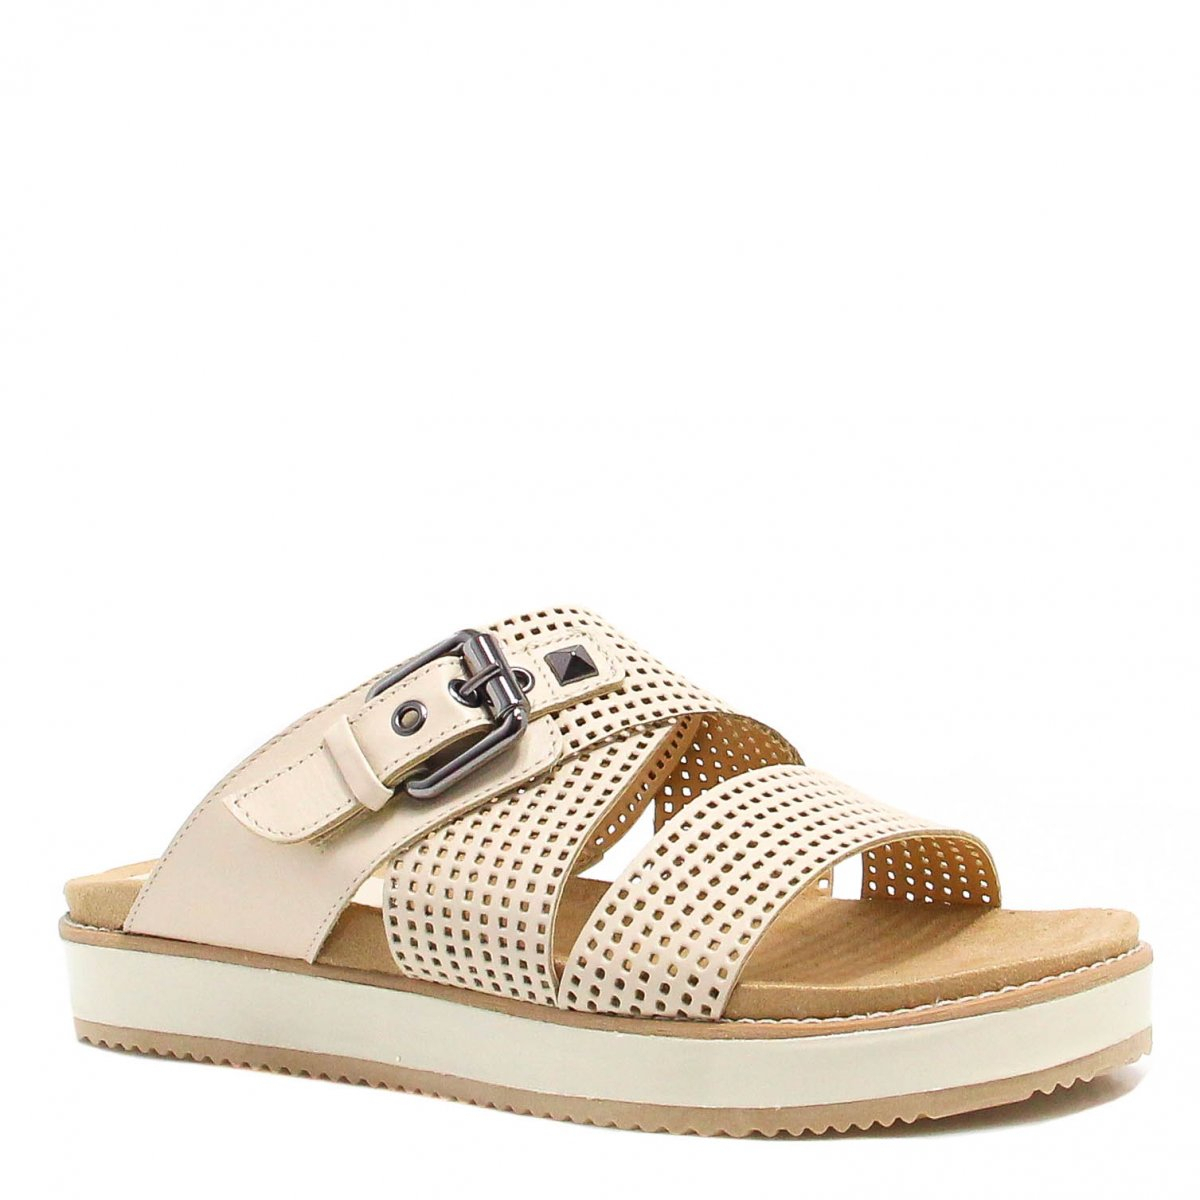 Tamanco Zariff Shoes Birken Fivela Branco